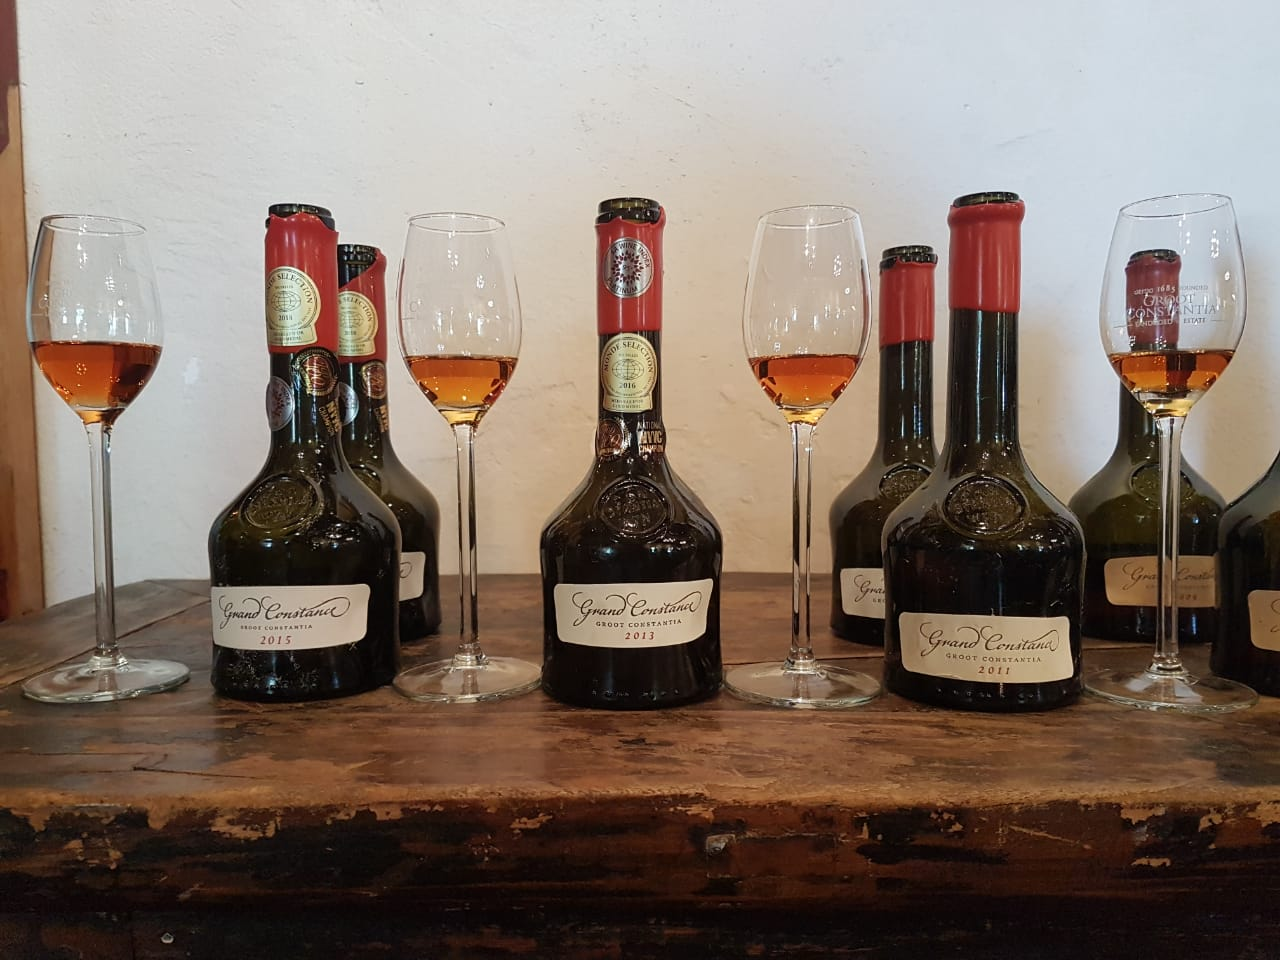 Ambrosia Bottled: A Vertical Tasting Of Groot Constantia's Grand Constance Wine photo